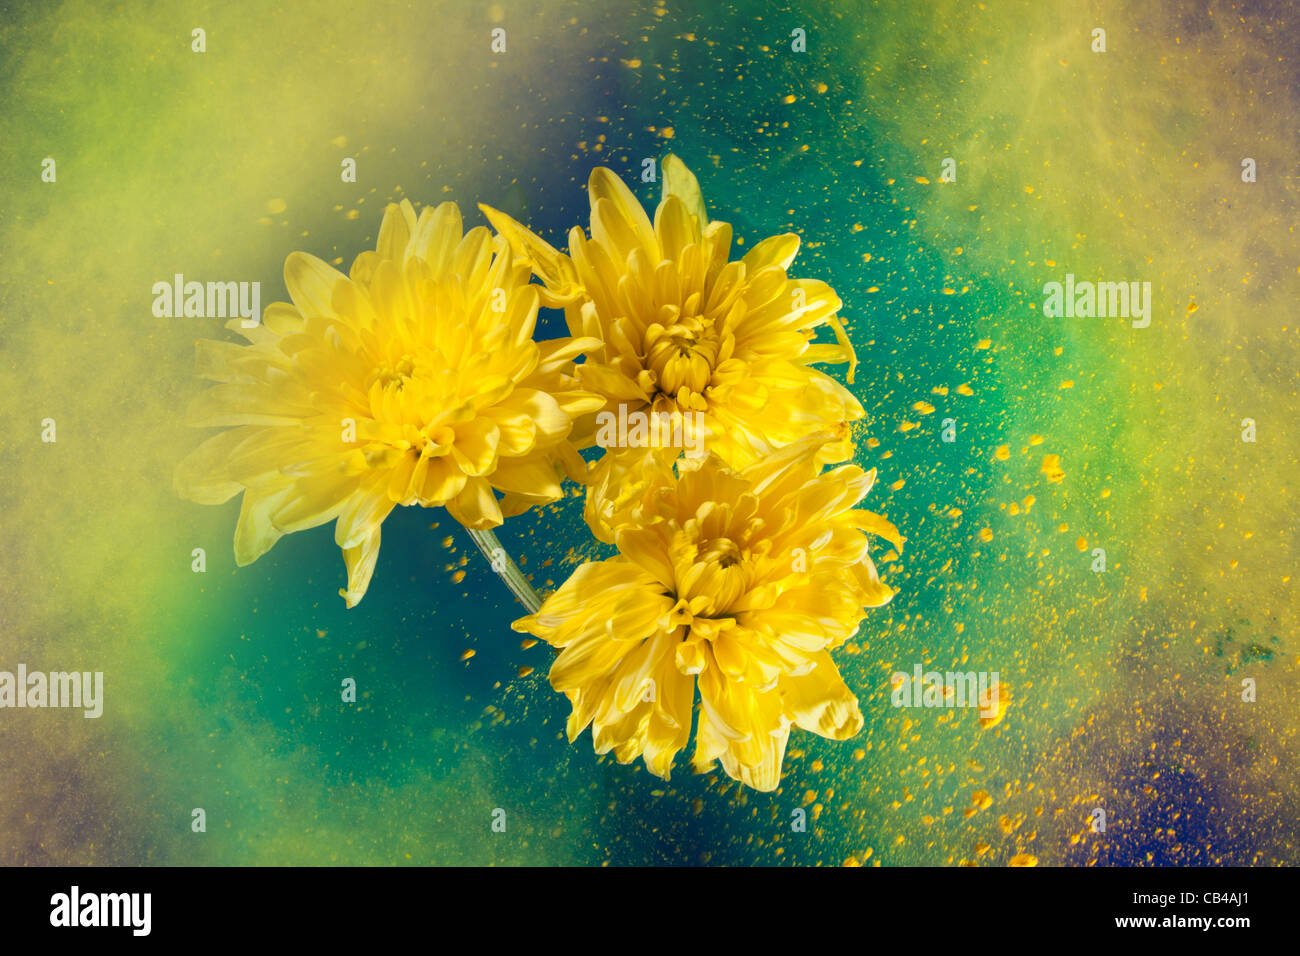 golden-daisy flowers and universe like explosion of color paint ...